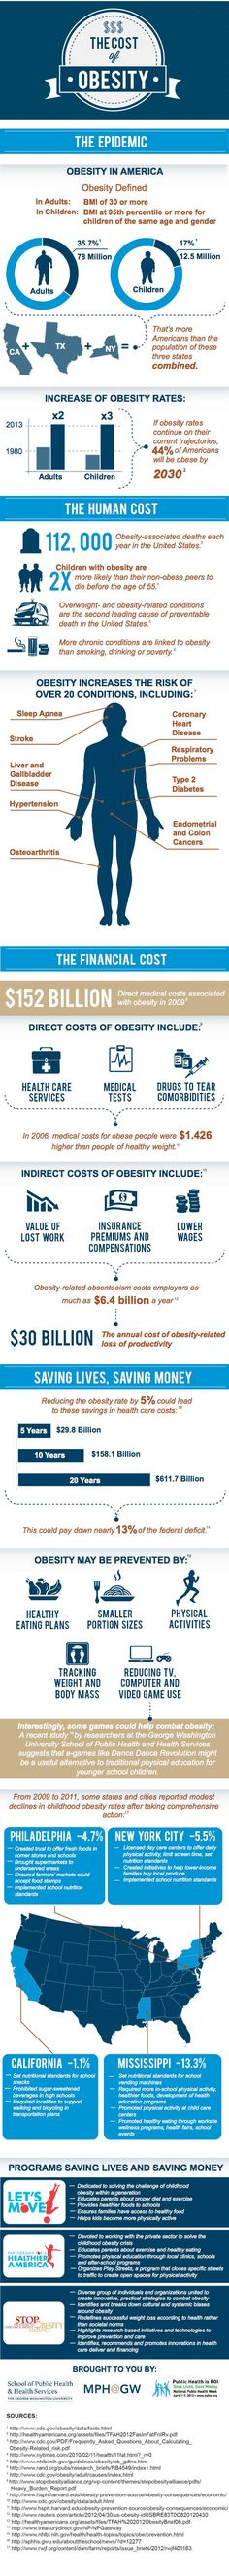 Infographic: The cost of obesity, healthcarecommunication.com